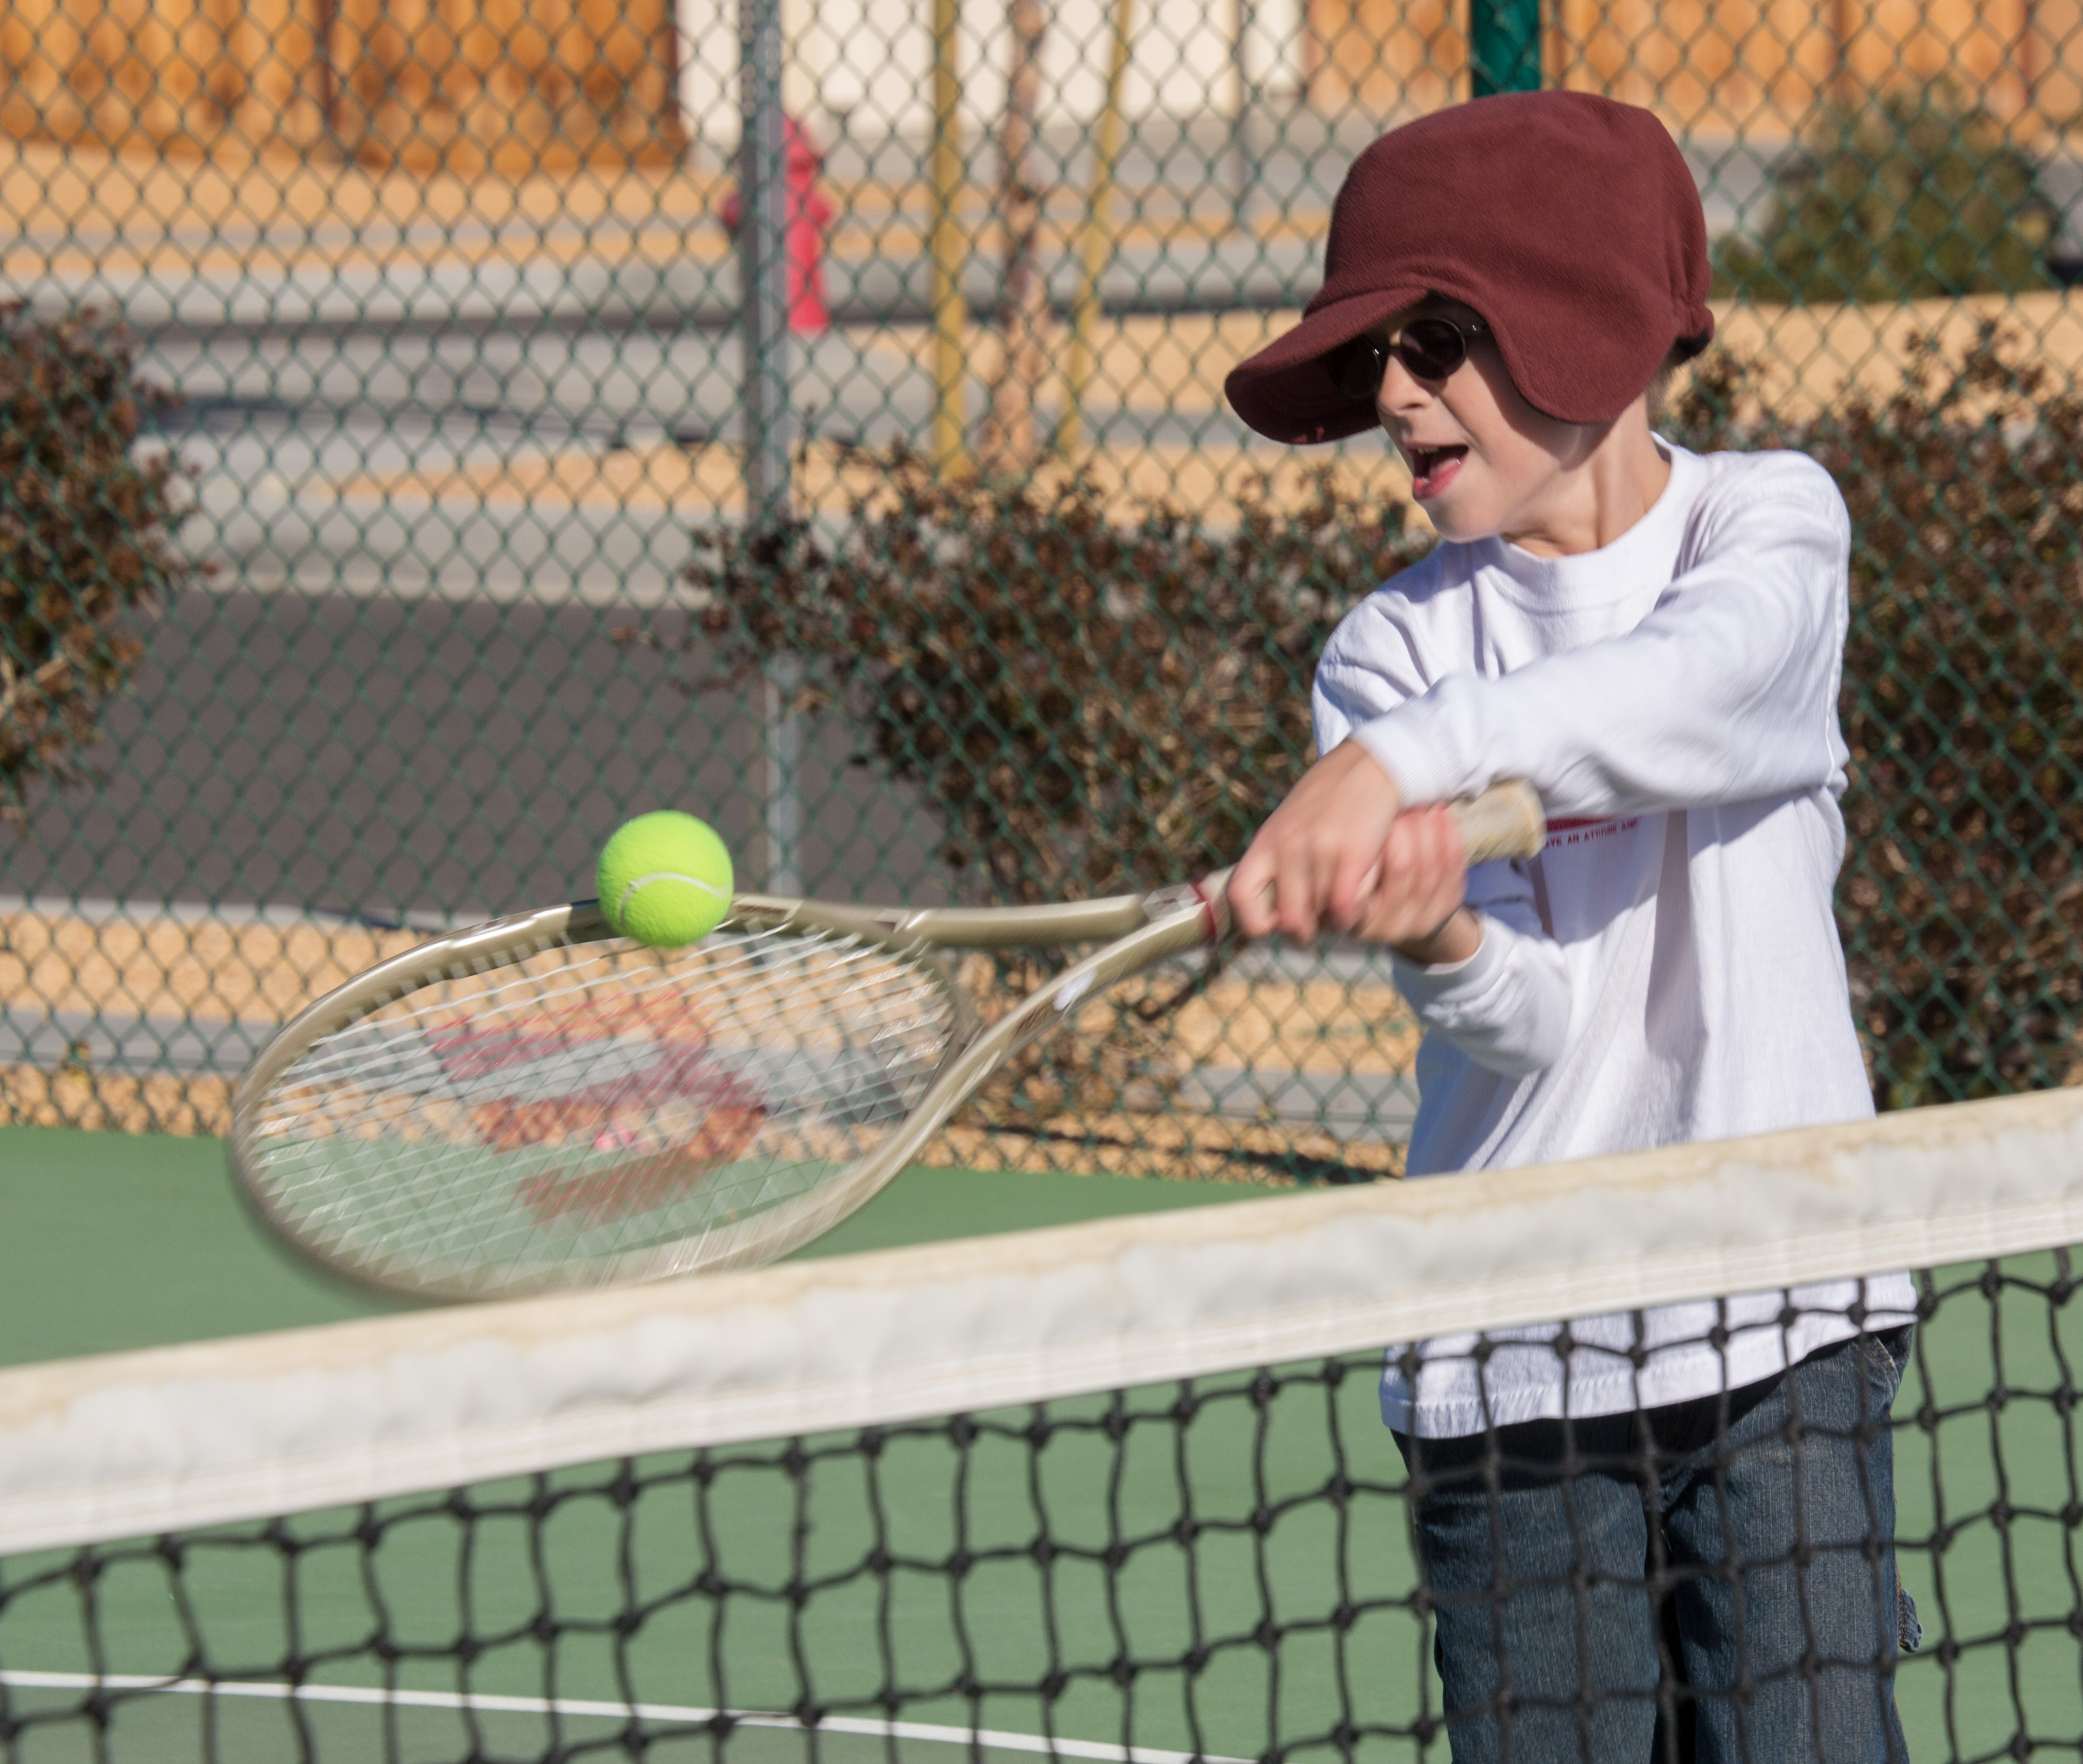 Ryan, Tennis, Fort Irwin California